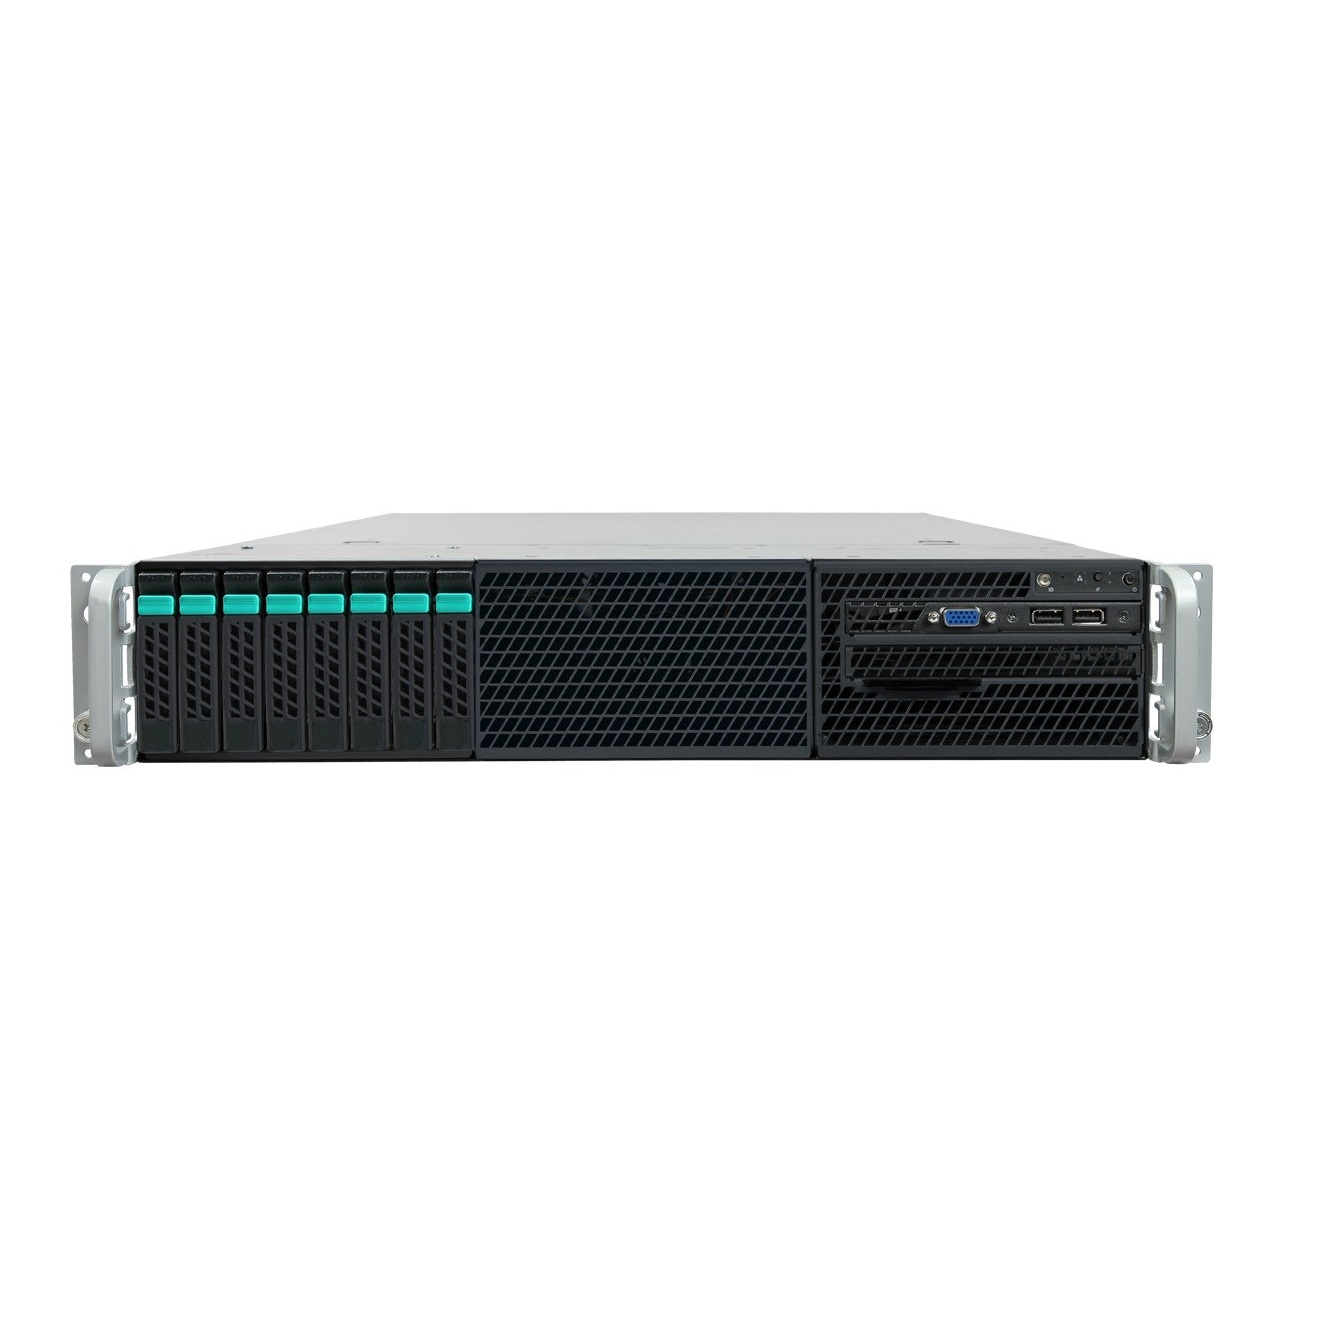 583966-001 HP Proliant DL380 G7 Refurbished Configure To Order